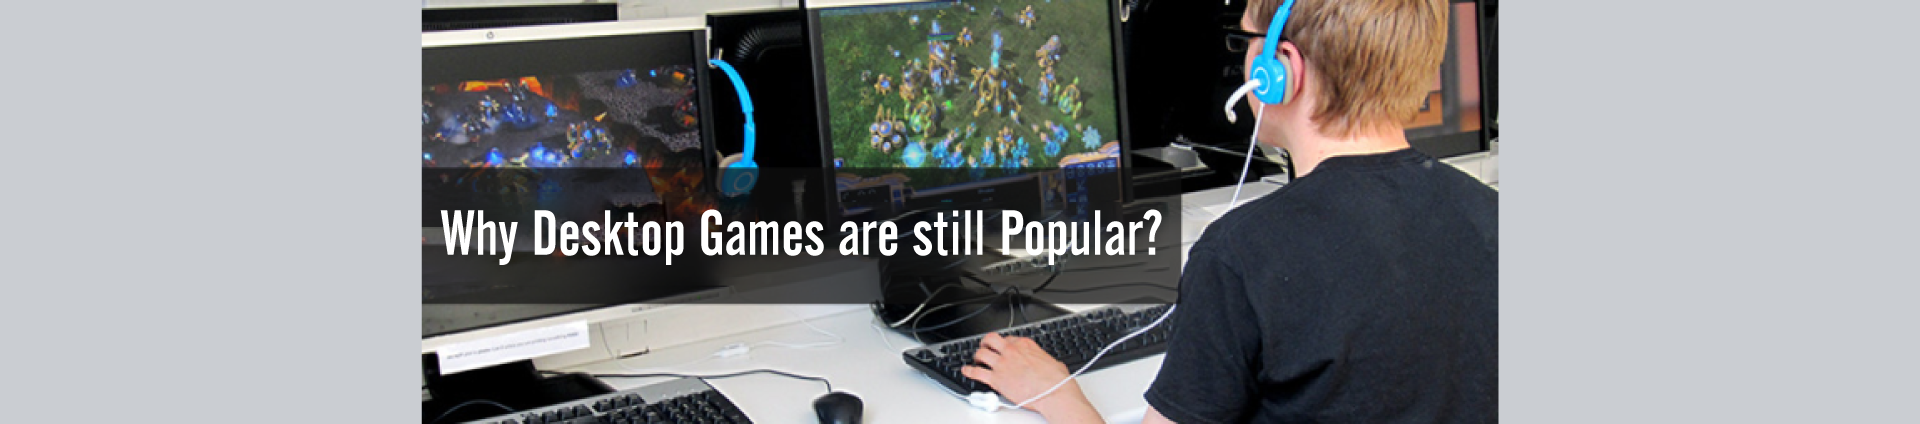 Computer Games Are Still Popular among Gamers